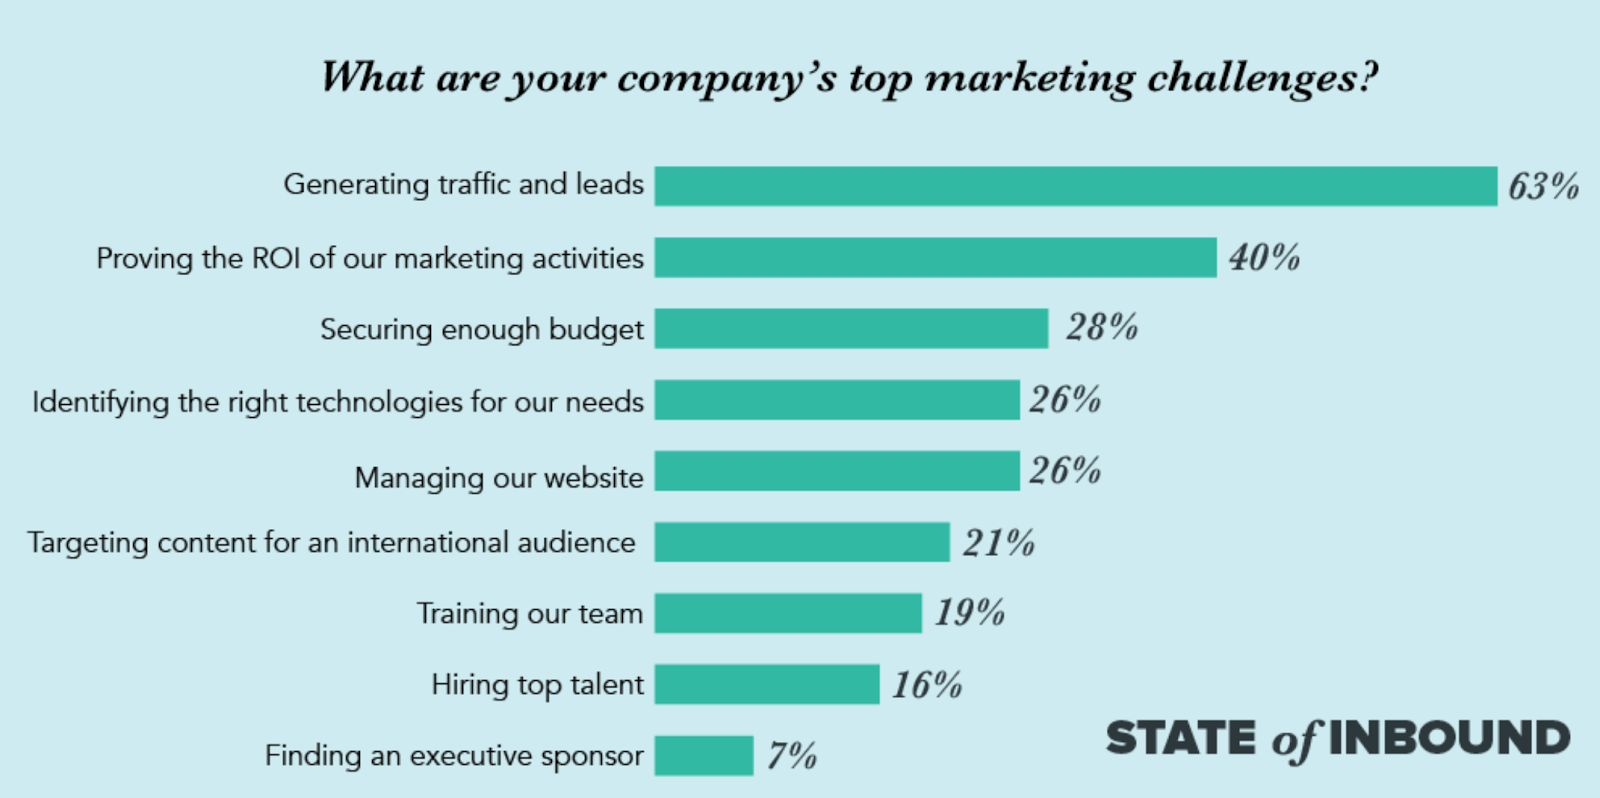 State of Inbound chart showing stats on top marketing challenges.